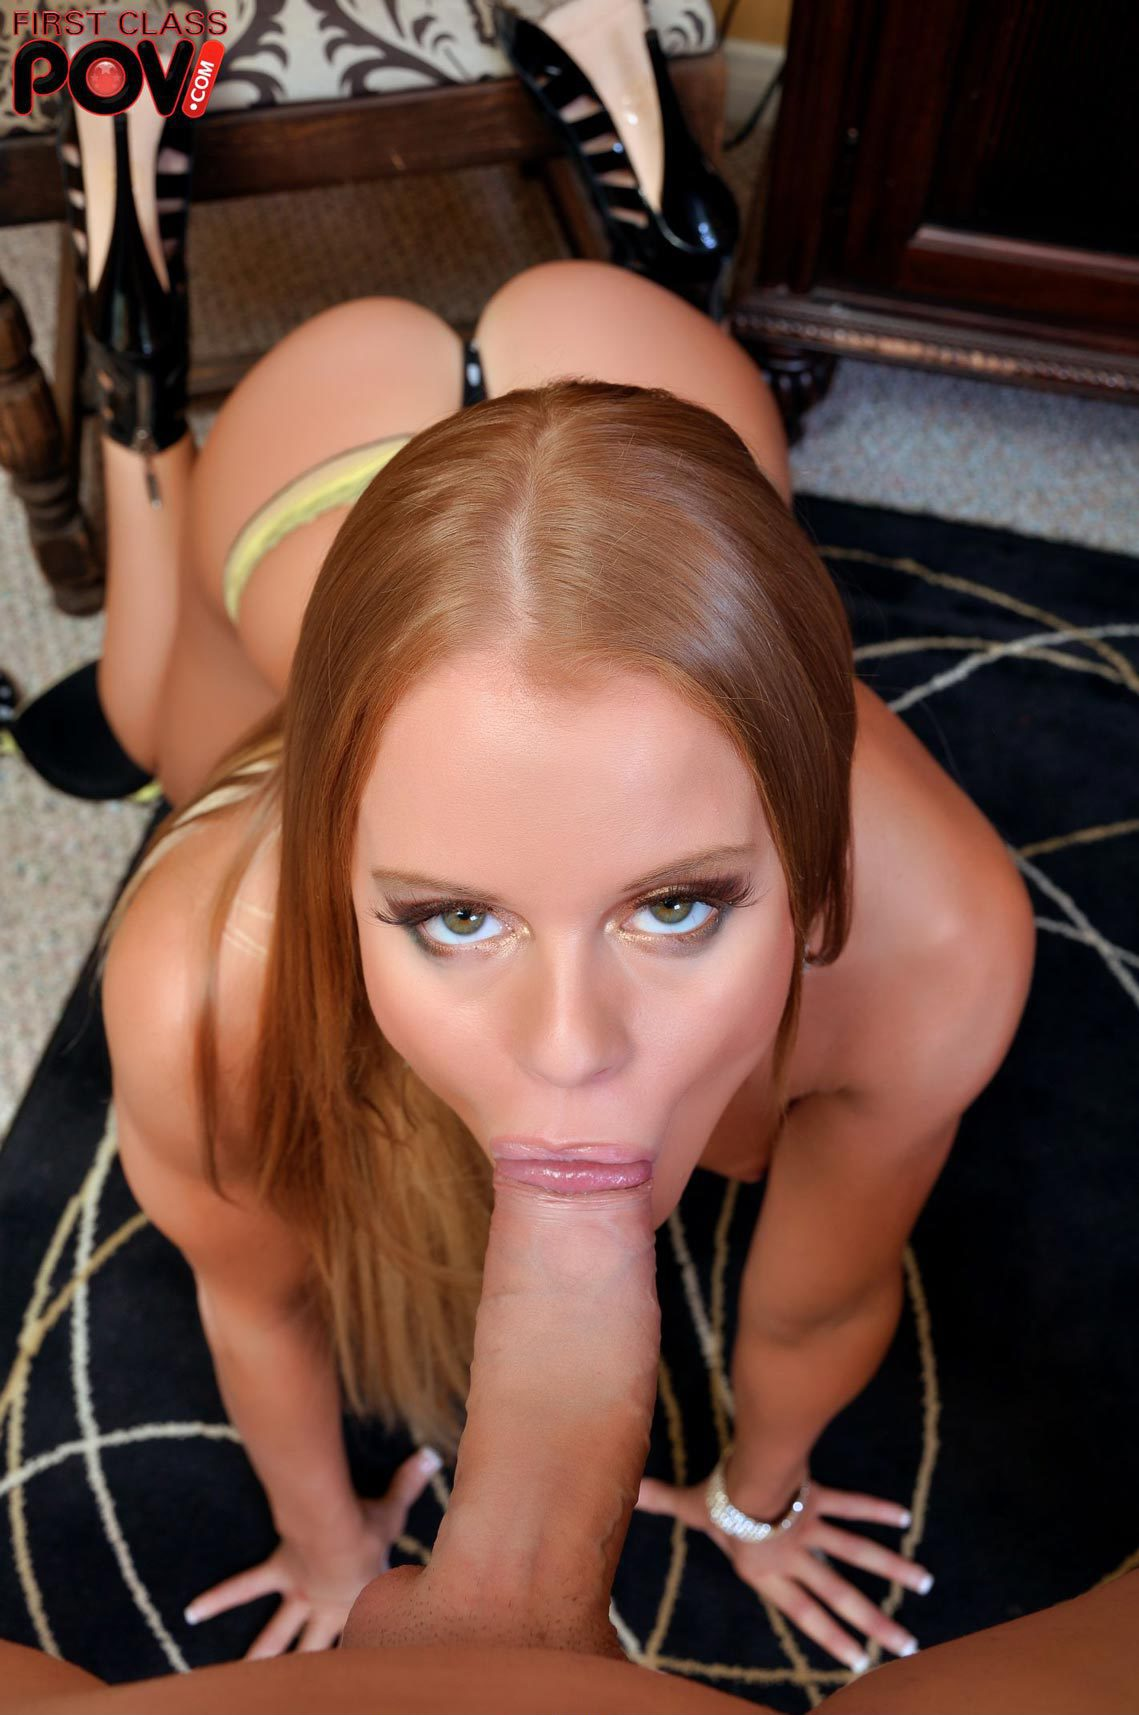 i want your cock with bella diamond